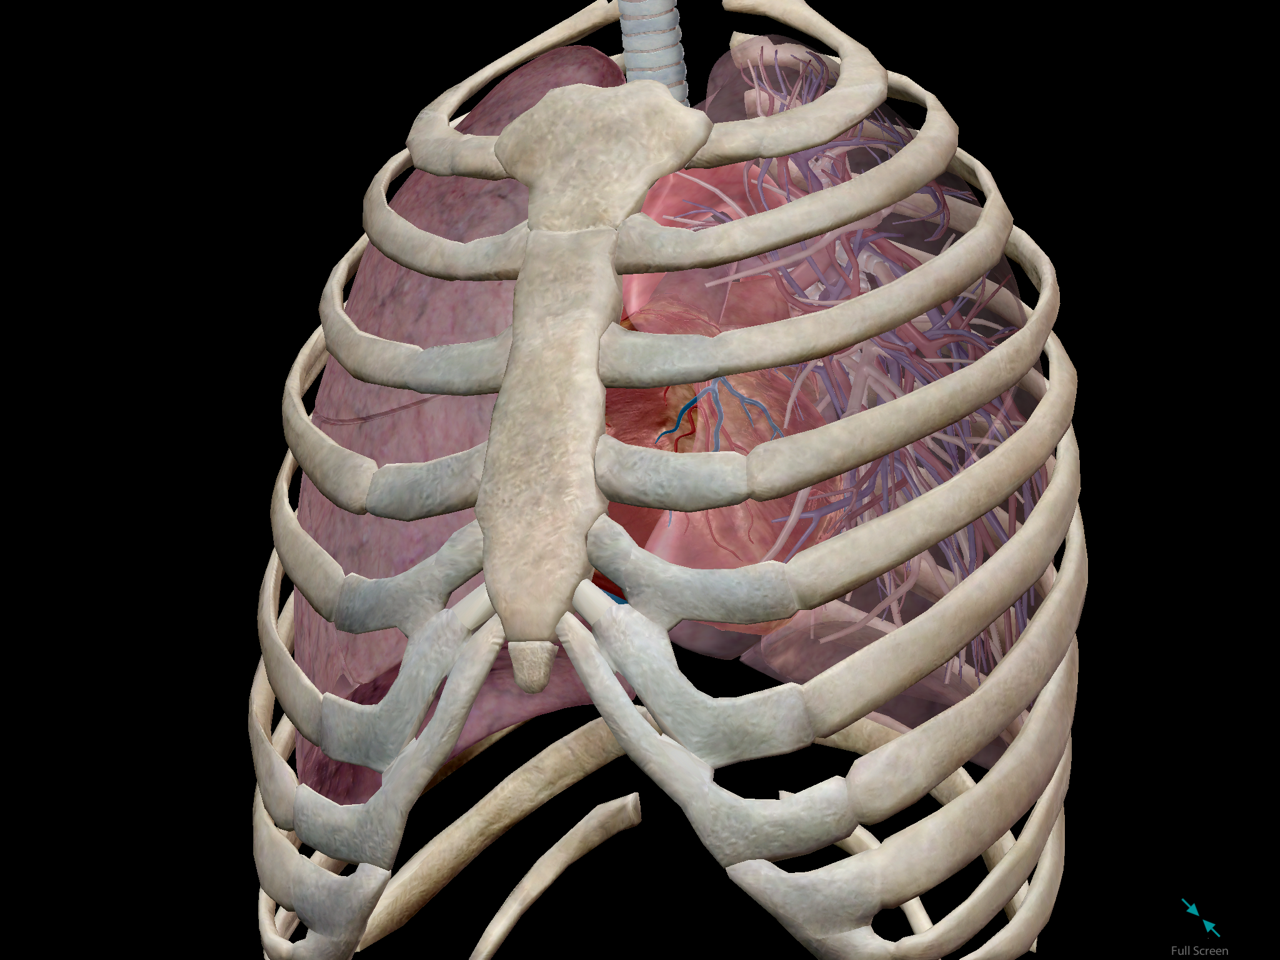 thoracic-cavity-lungs-fit-inside.png